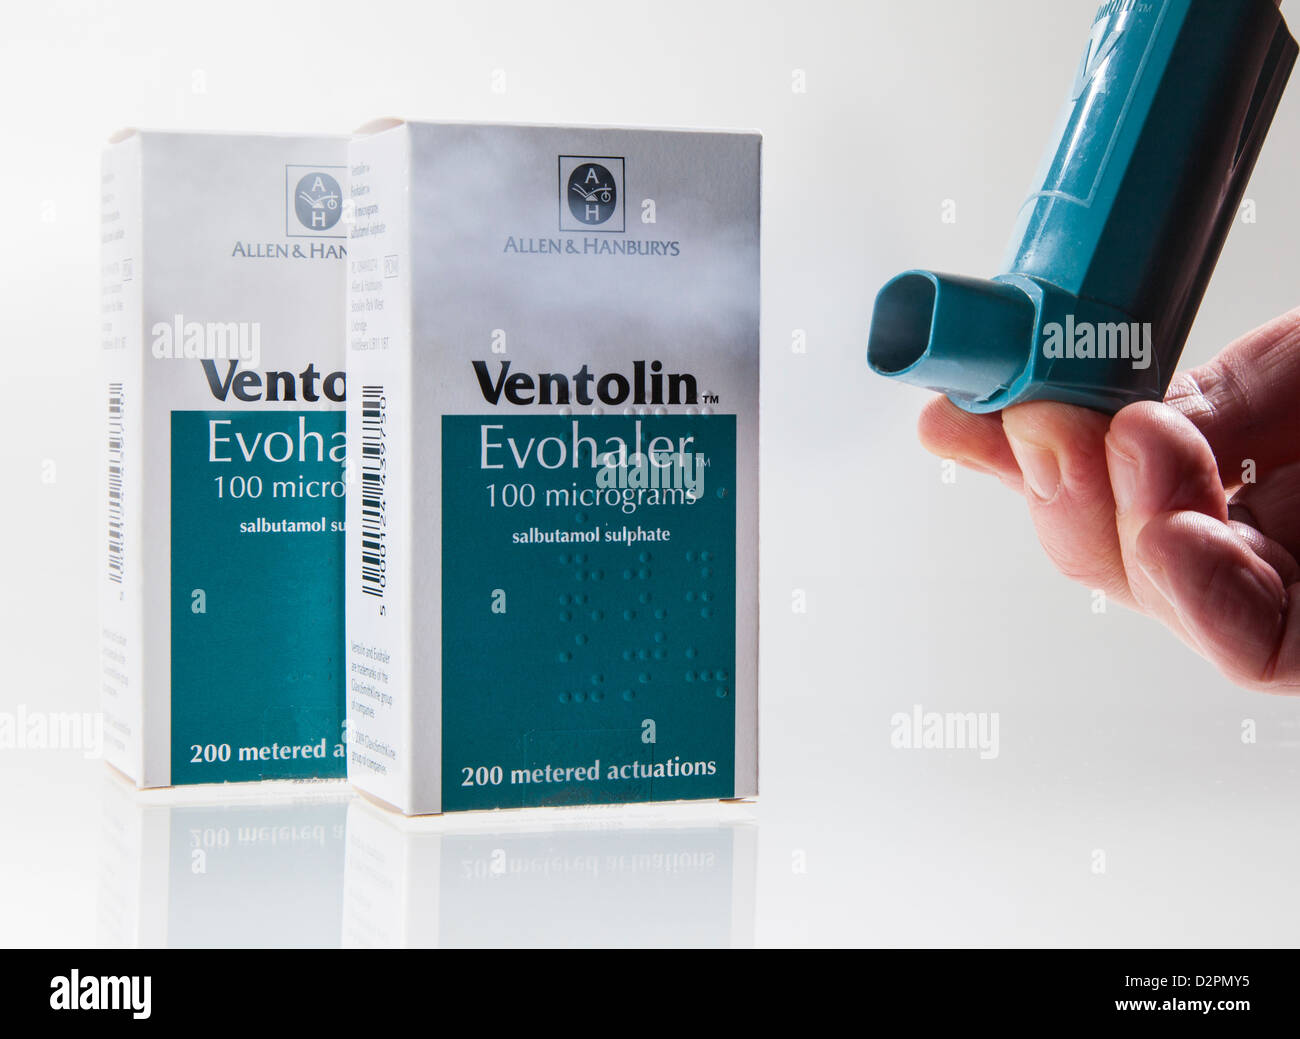 Ventolin asthma inhaler showing puff of medicine being dispensed and two boxes behind - Stock Image